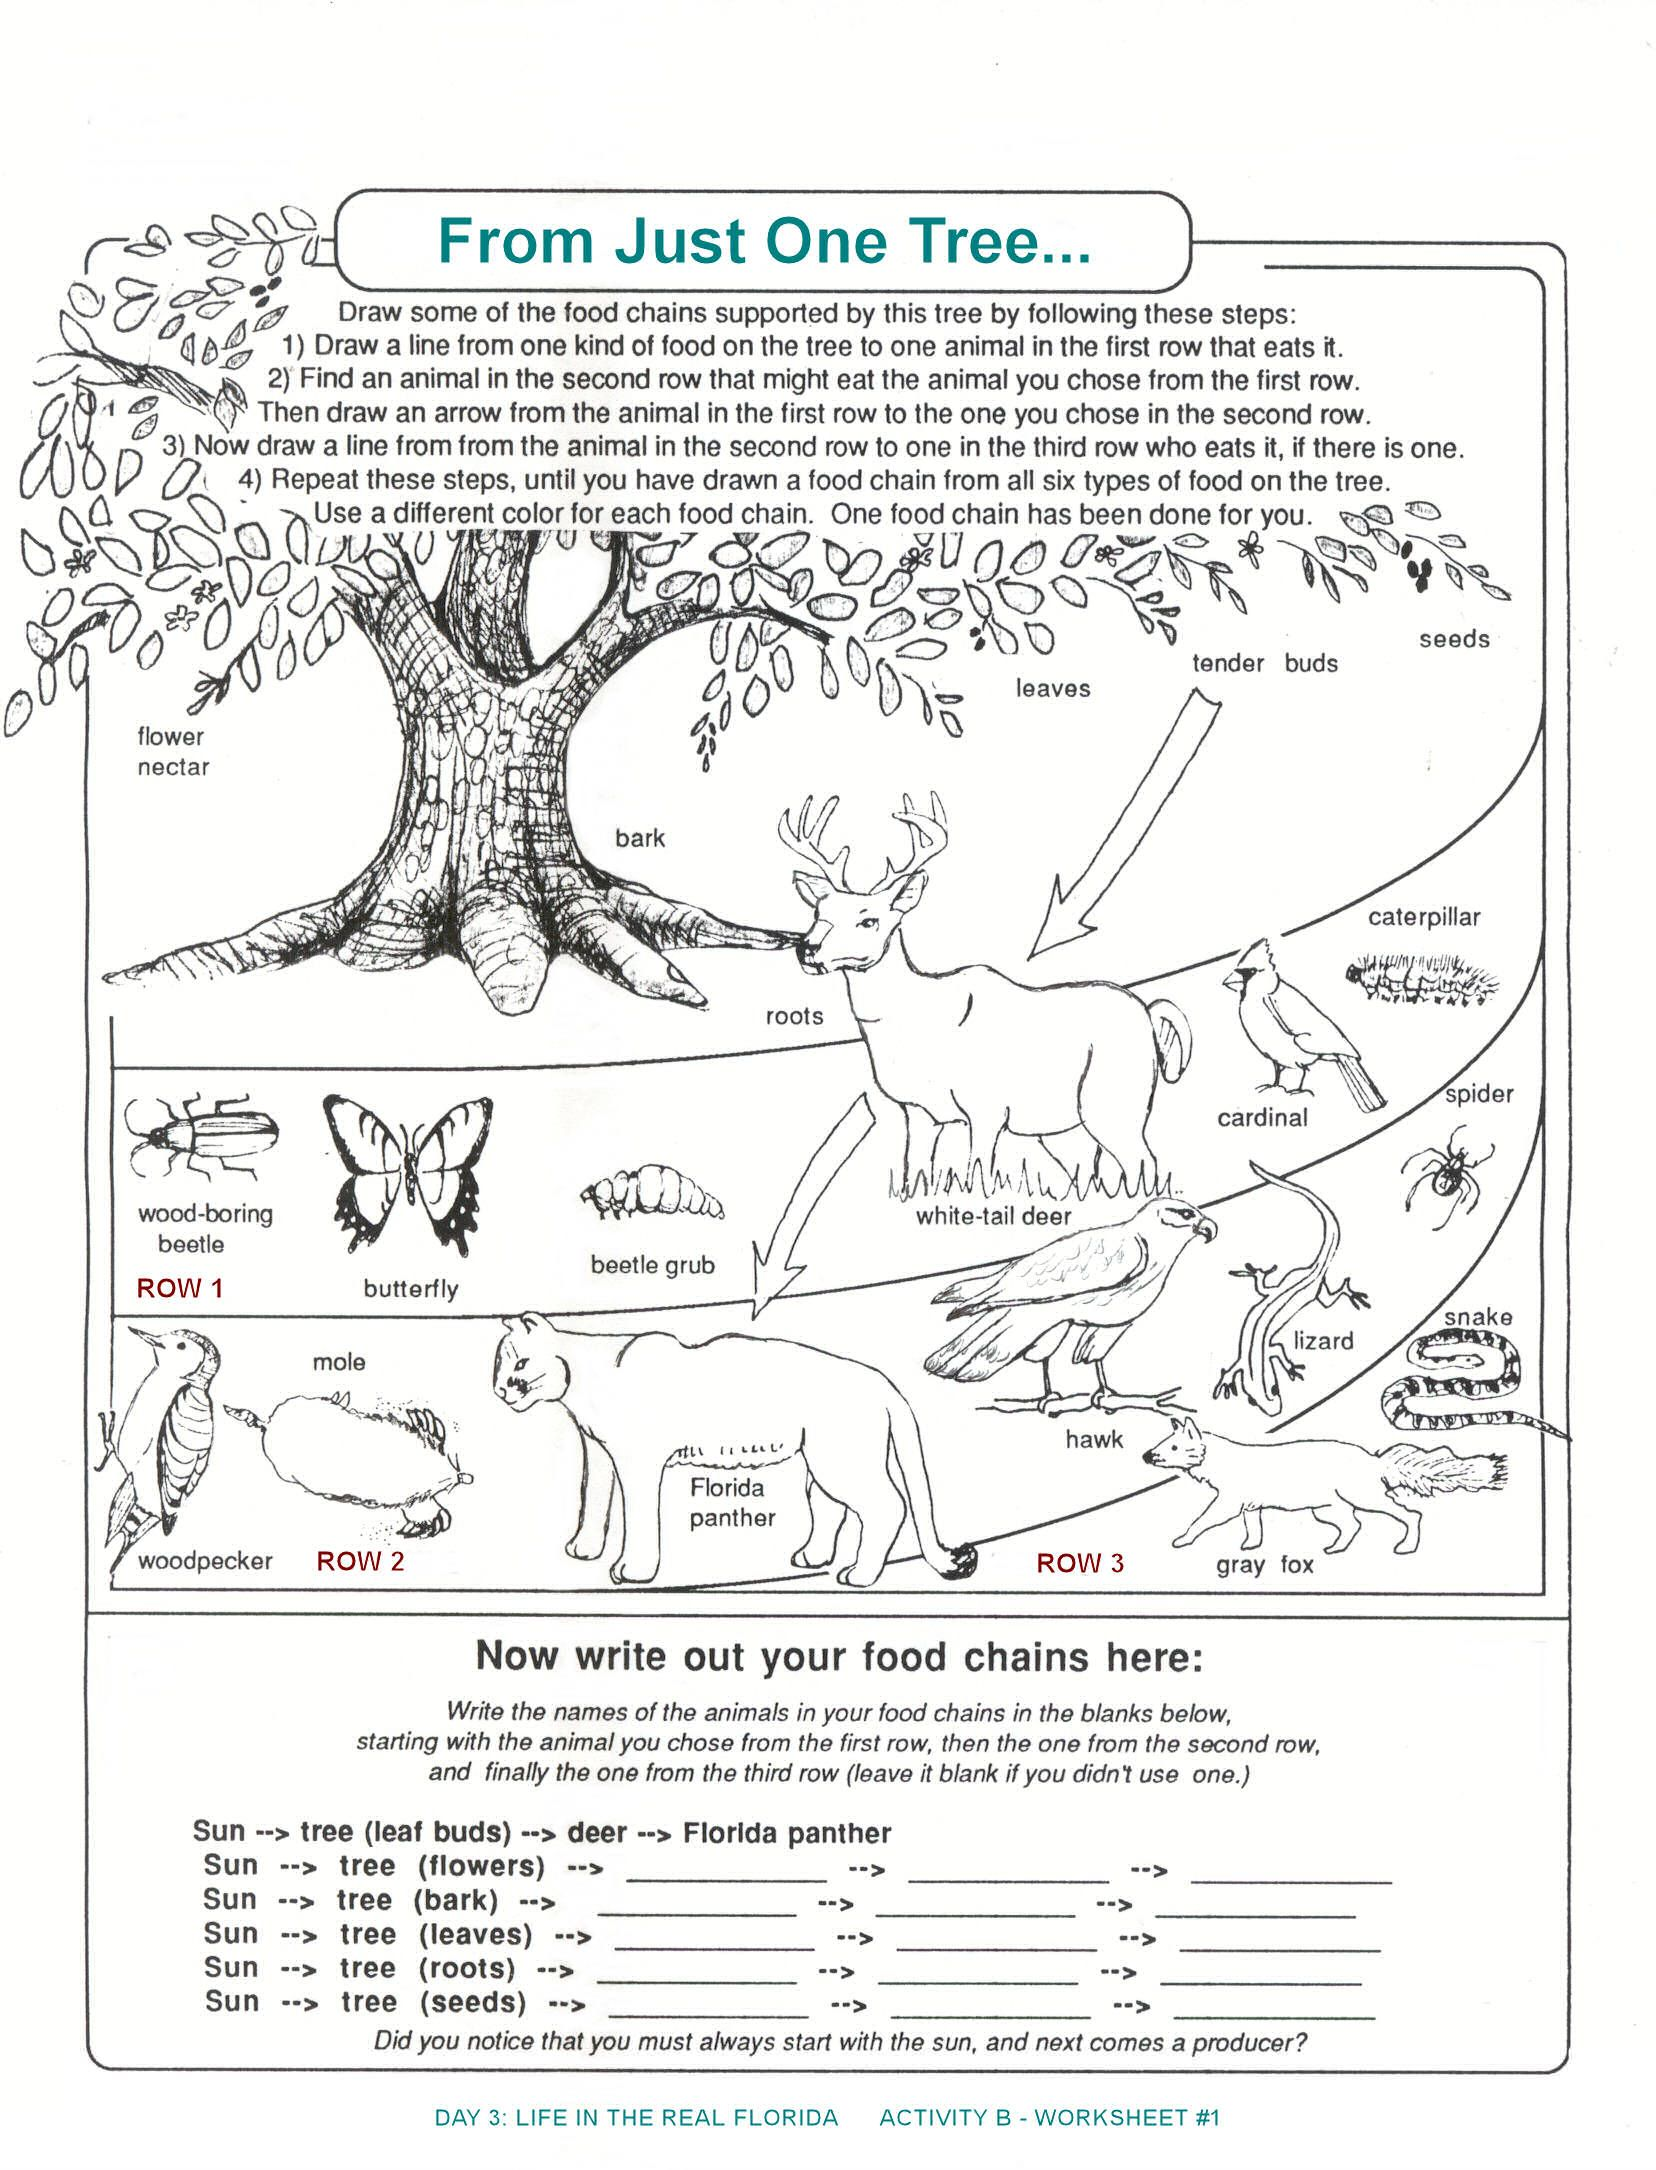 worksheet Ecosystems Worksheet decomposers worksheets for kids archbold biological station ecological research conservation